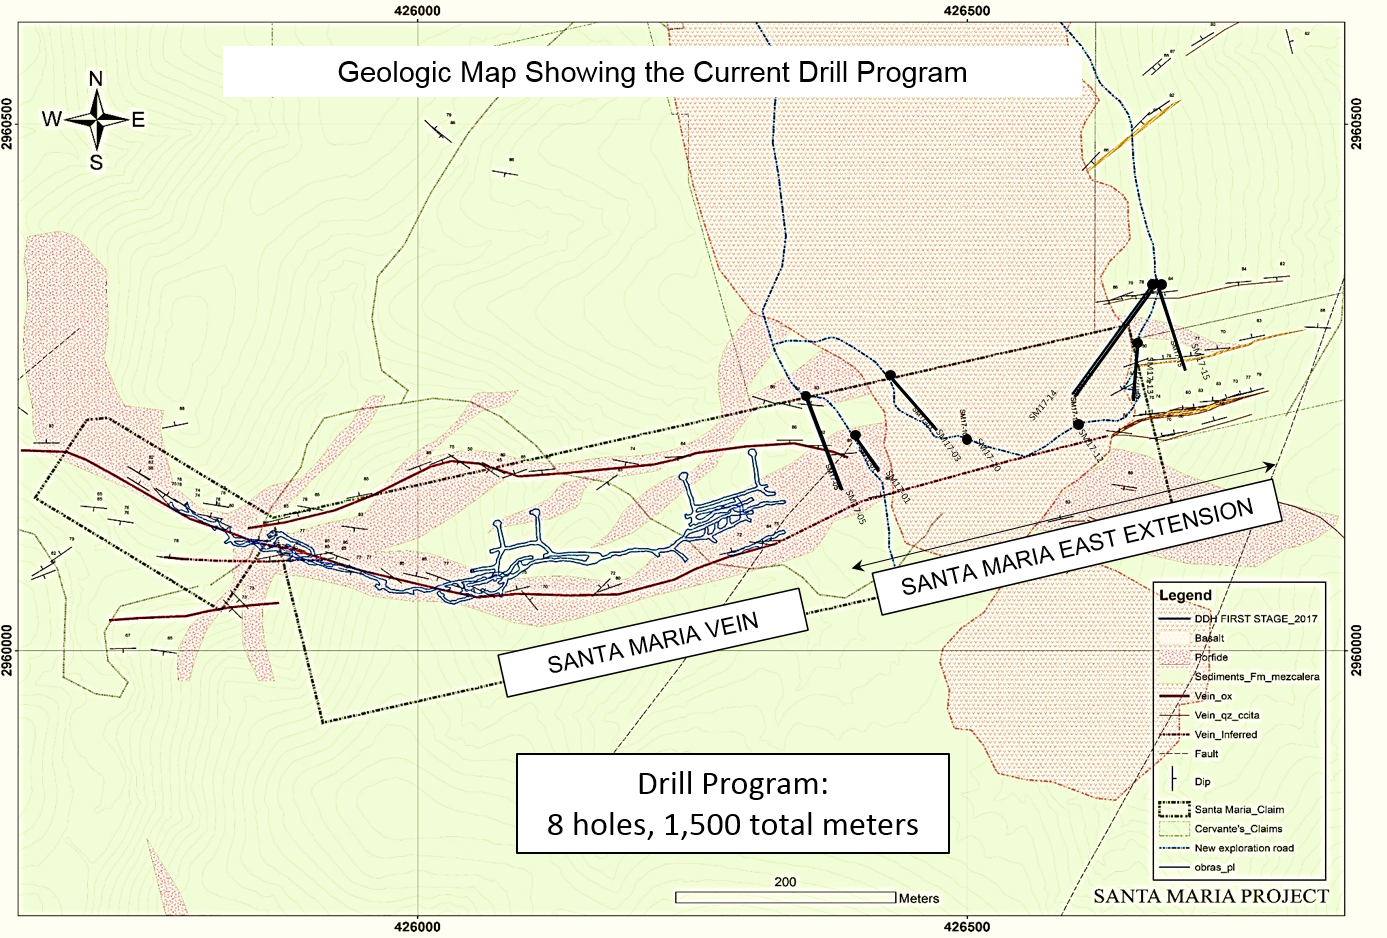 Geologic Map Showing the Current Drill Program